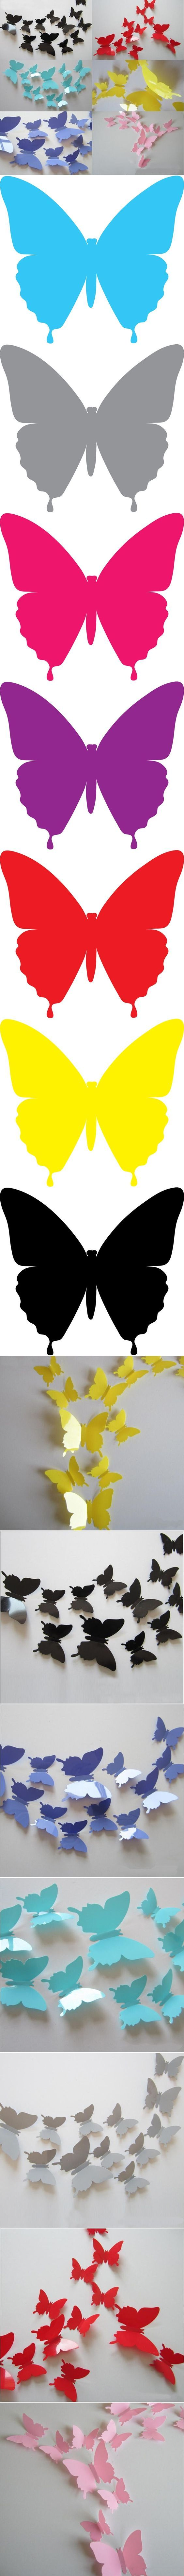 De DIY Decoración de la pared vacía con las mariposas | UsefulDIY.com